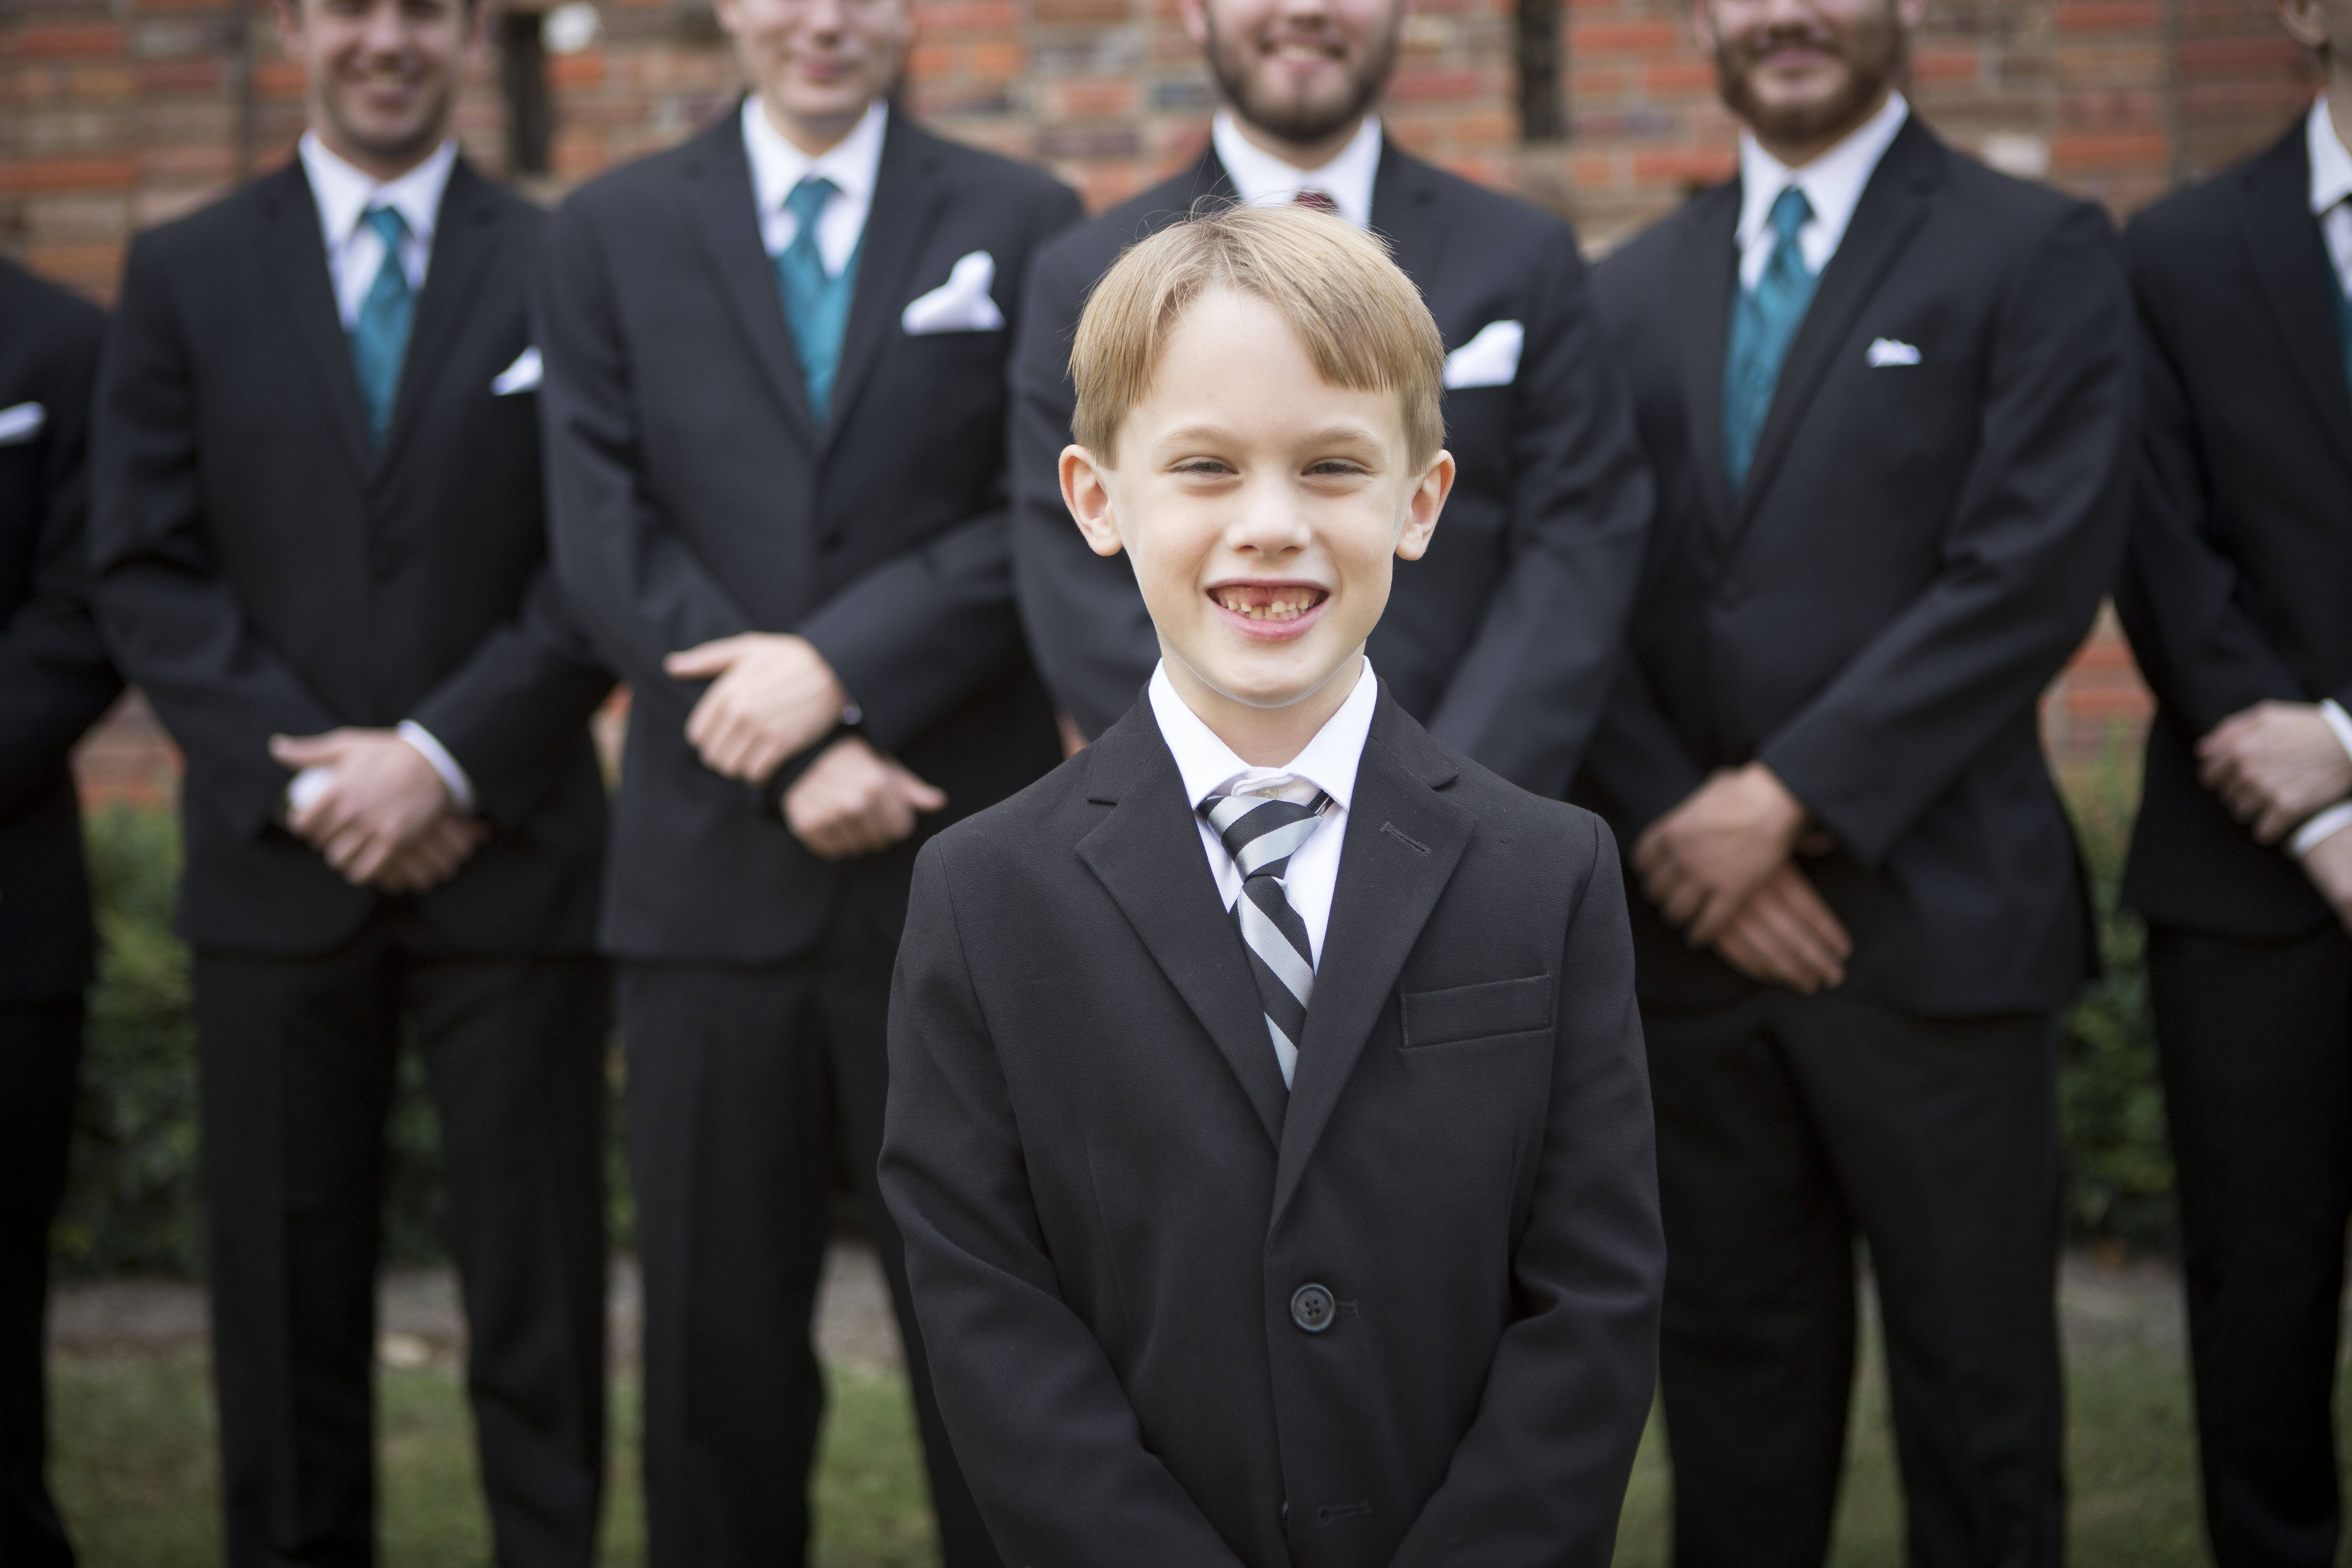 Britt Wedding - Ring Bearer